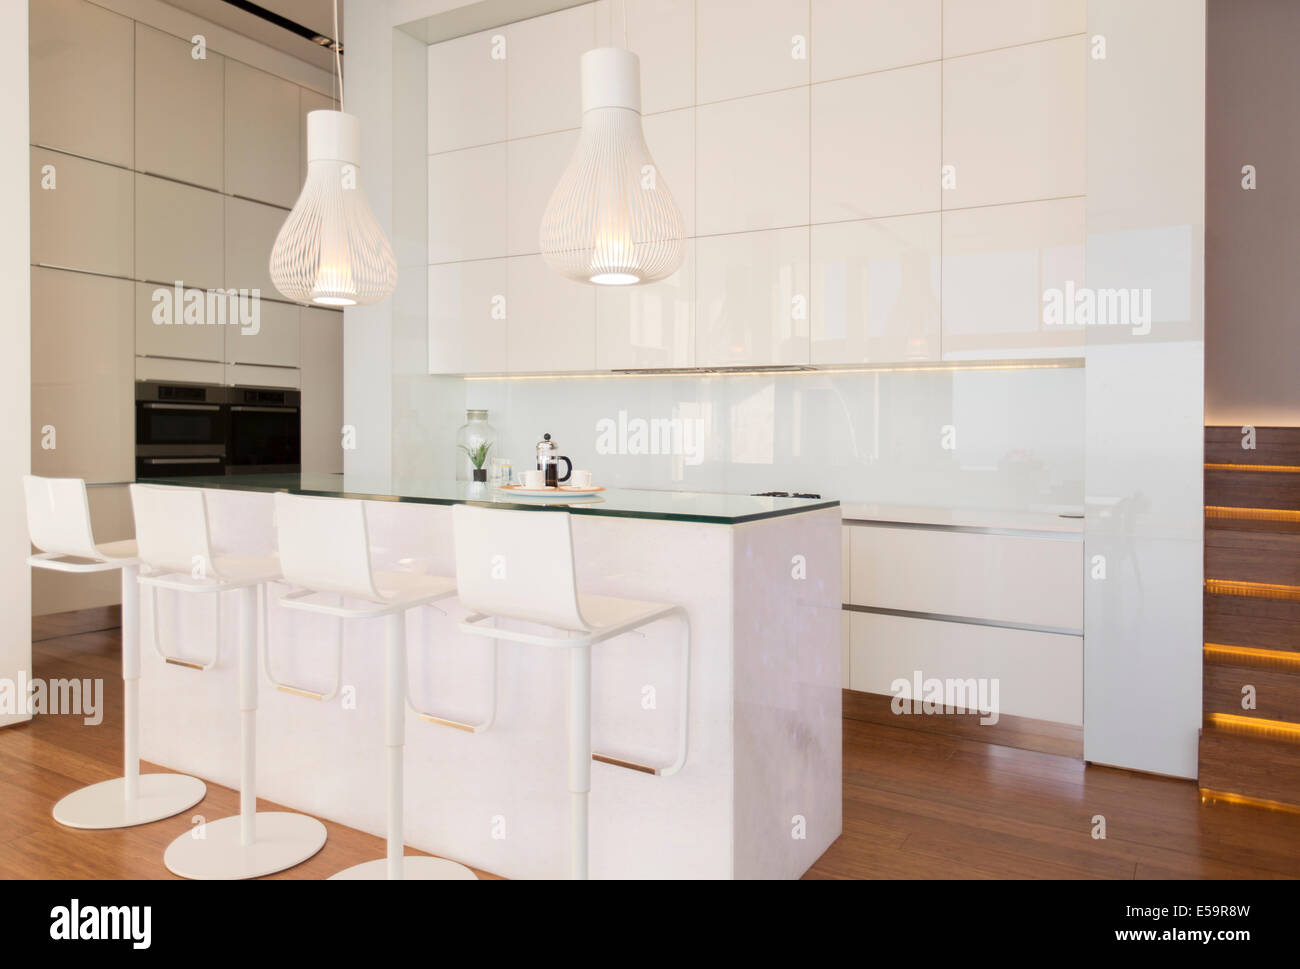 Bar stools at counter in modern kitchen - Stock Image